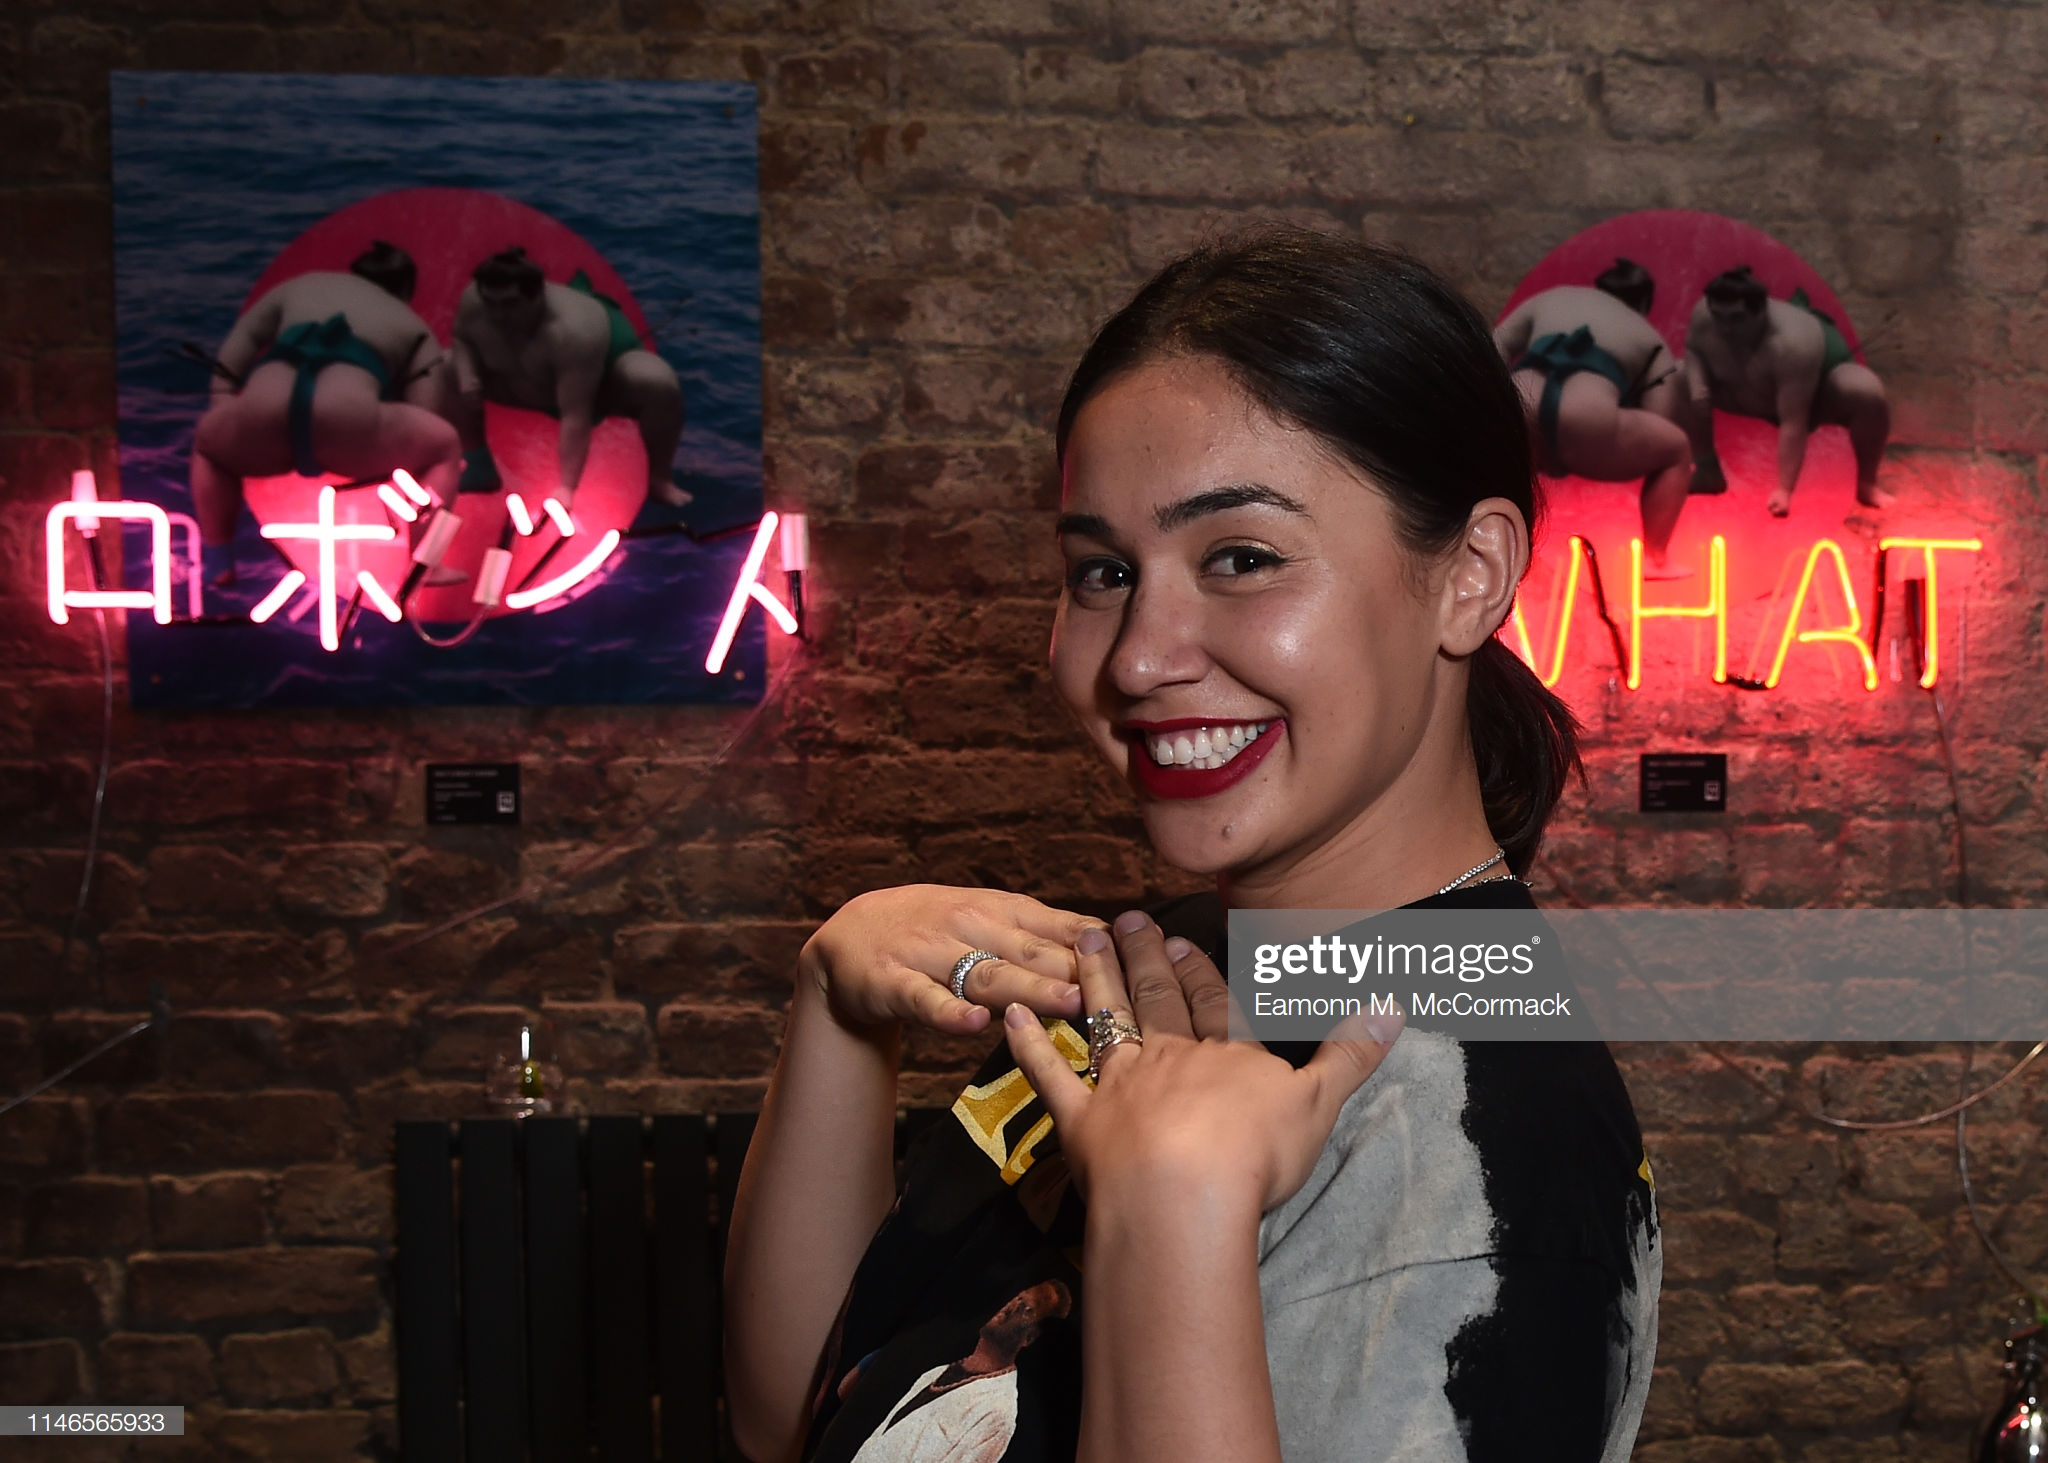 "LONDON, ENGLAND - MAY 02: Eve De Haan during ""Futurama"" exhibtion by the TAX Collection at Imitate Modern on May 02, 2019 in London, England. (Photo by Eamonn M. McCormack/Getty Images) LONDON, ENGLAND - MAY 02: Eve De Haan during ""Futurama"" exhibtion by the TAX Collection at Imitate Modern on May 02, 2019 in London, England. (Photo by Eamonn M. McCormack/Getty Images)"